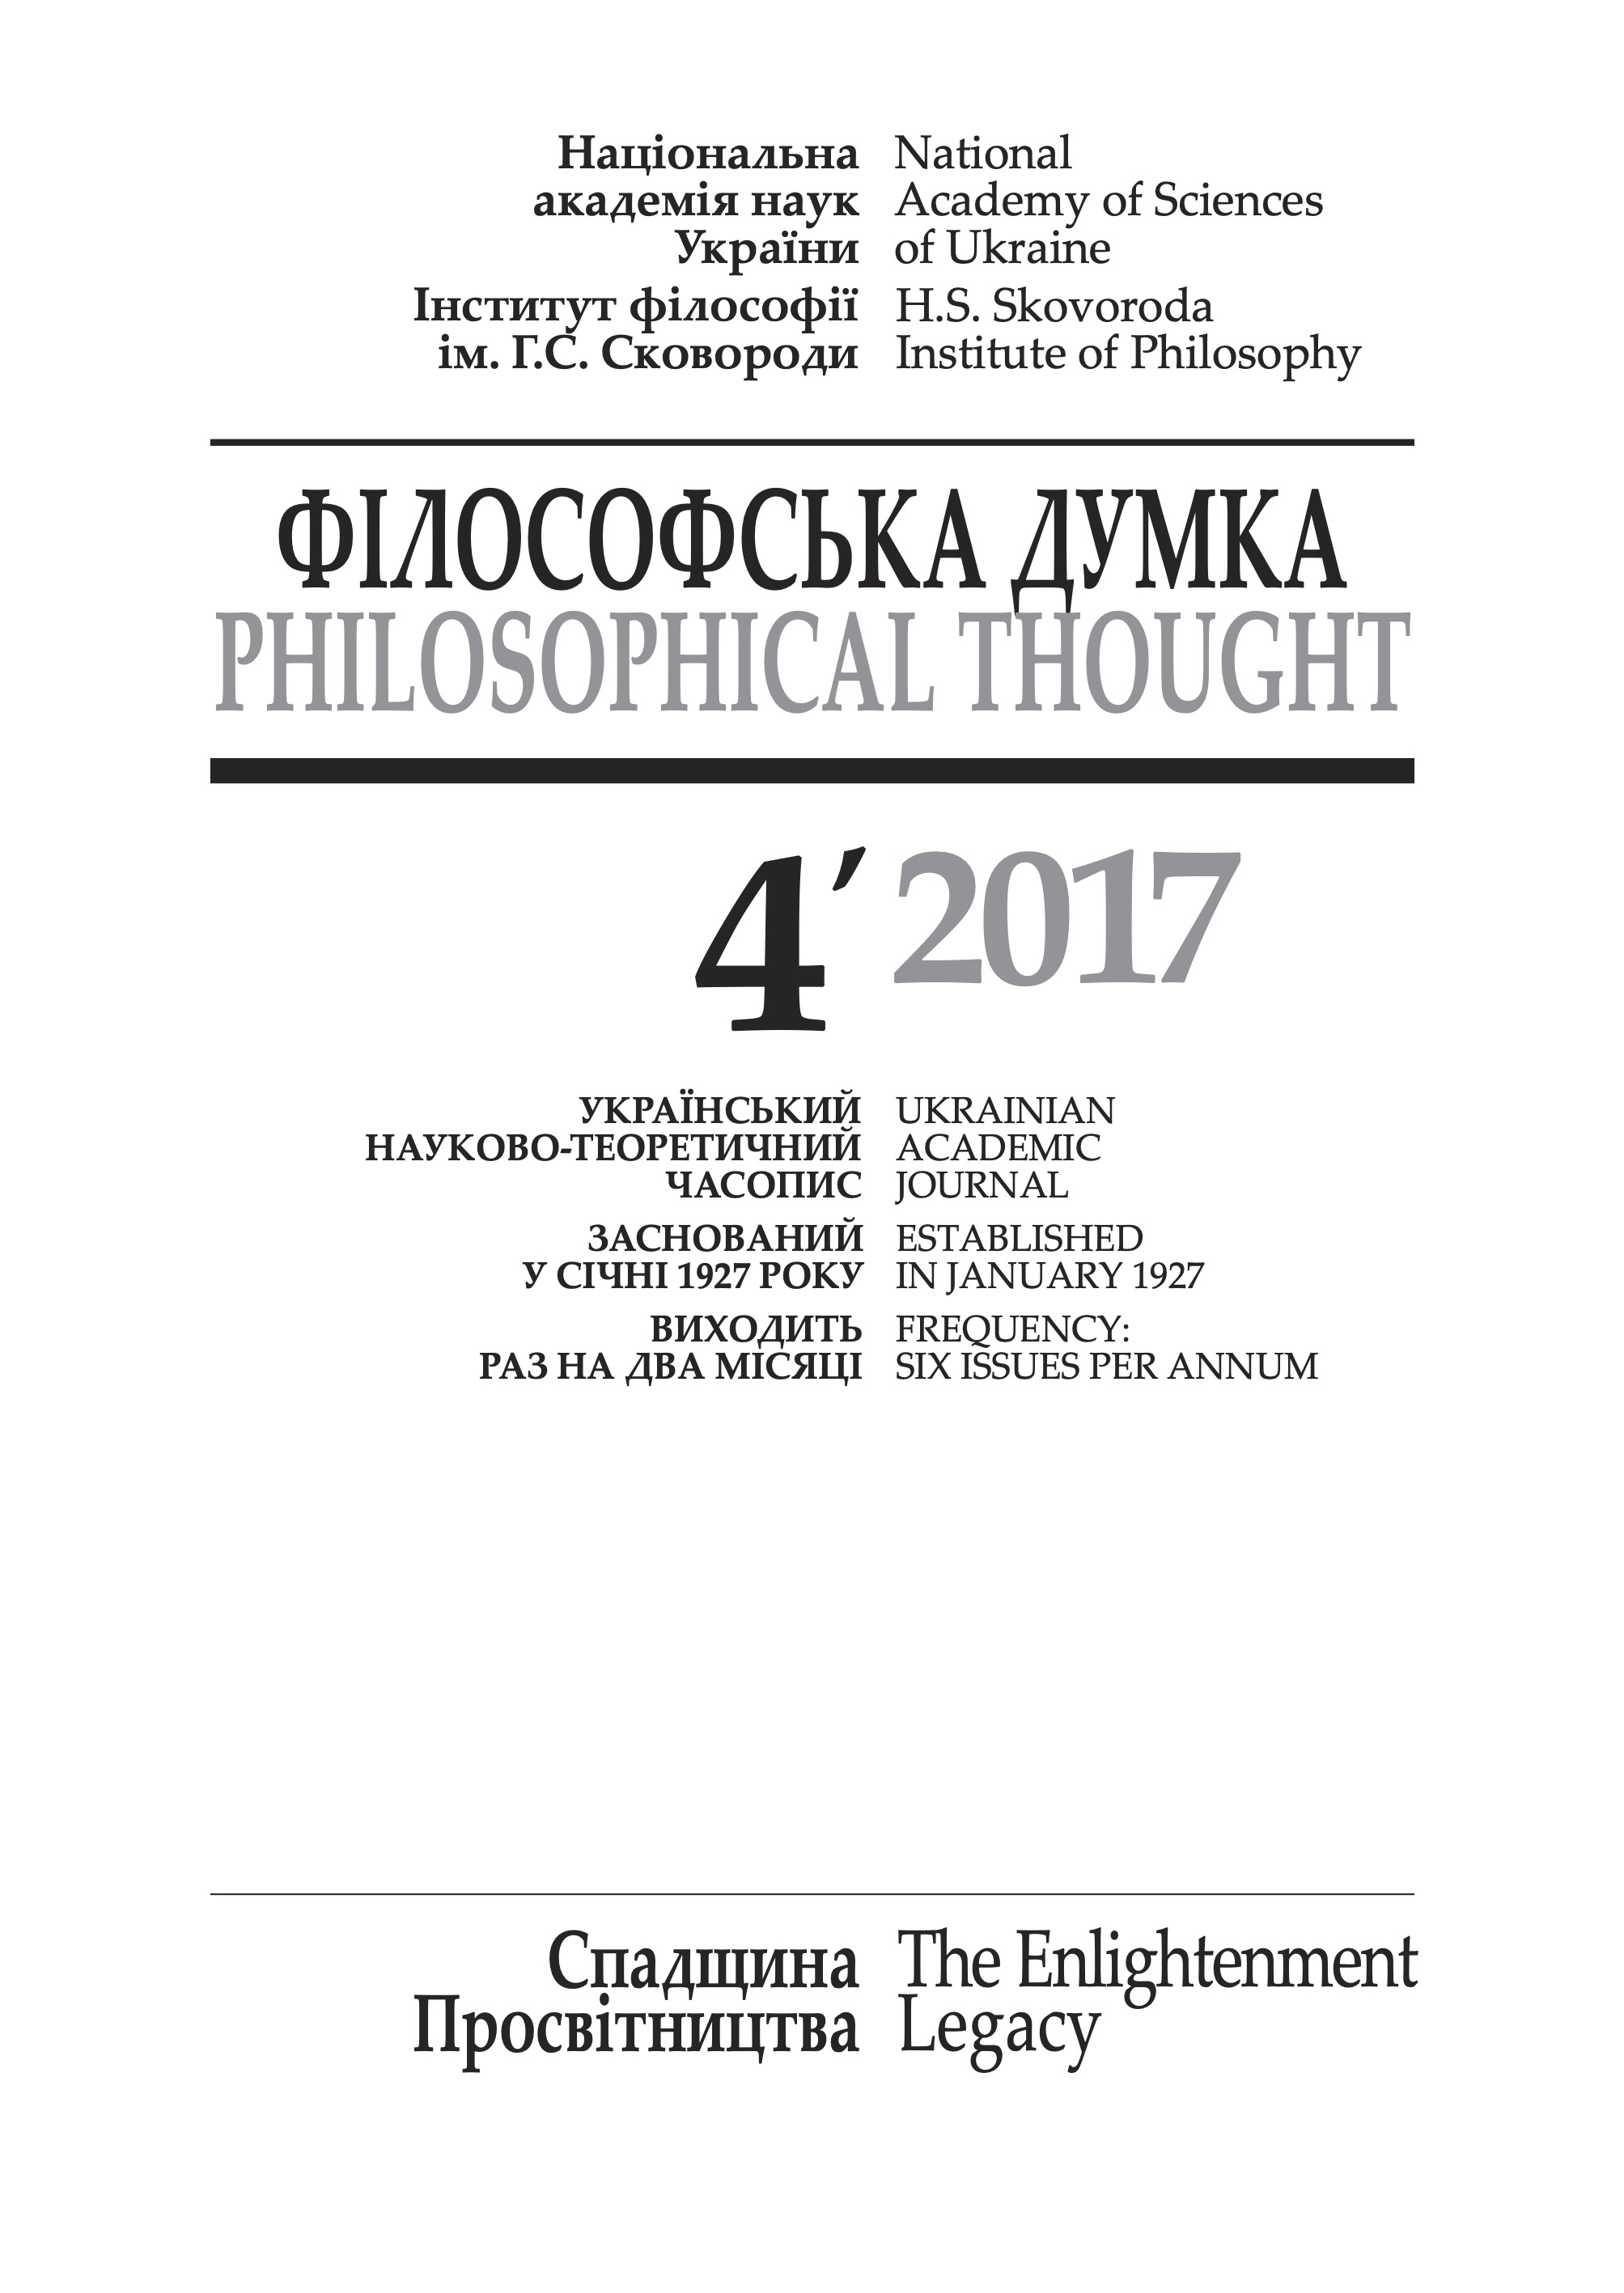 View No. 4 (2017): PHILOSOPHICAL THOUGHT